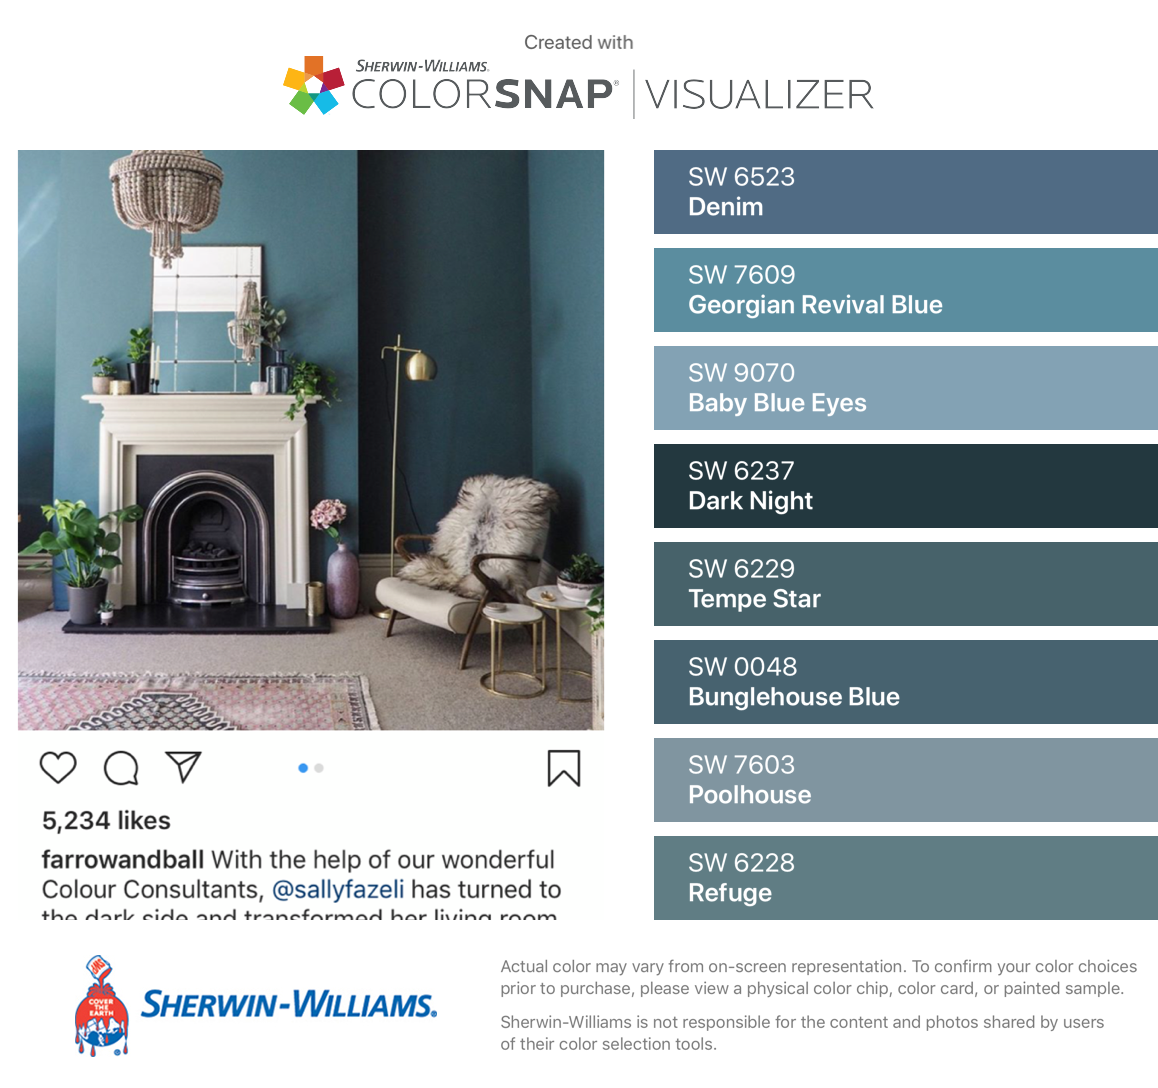 I Found These Colors With Colorsnap Visualizer For Iphone By Sherwin Williams Denim Sw 6523 Georgian Revival Blue Sw House Colors Pool Houses Blue Walls [ 1088 x 1158 Pixel ]